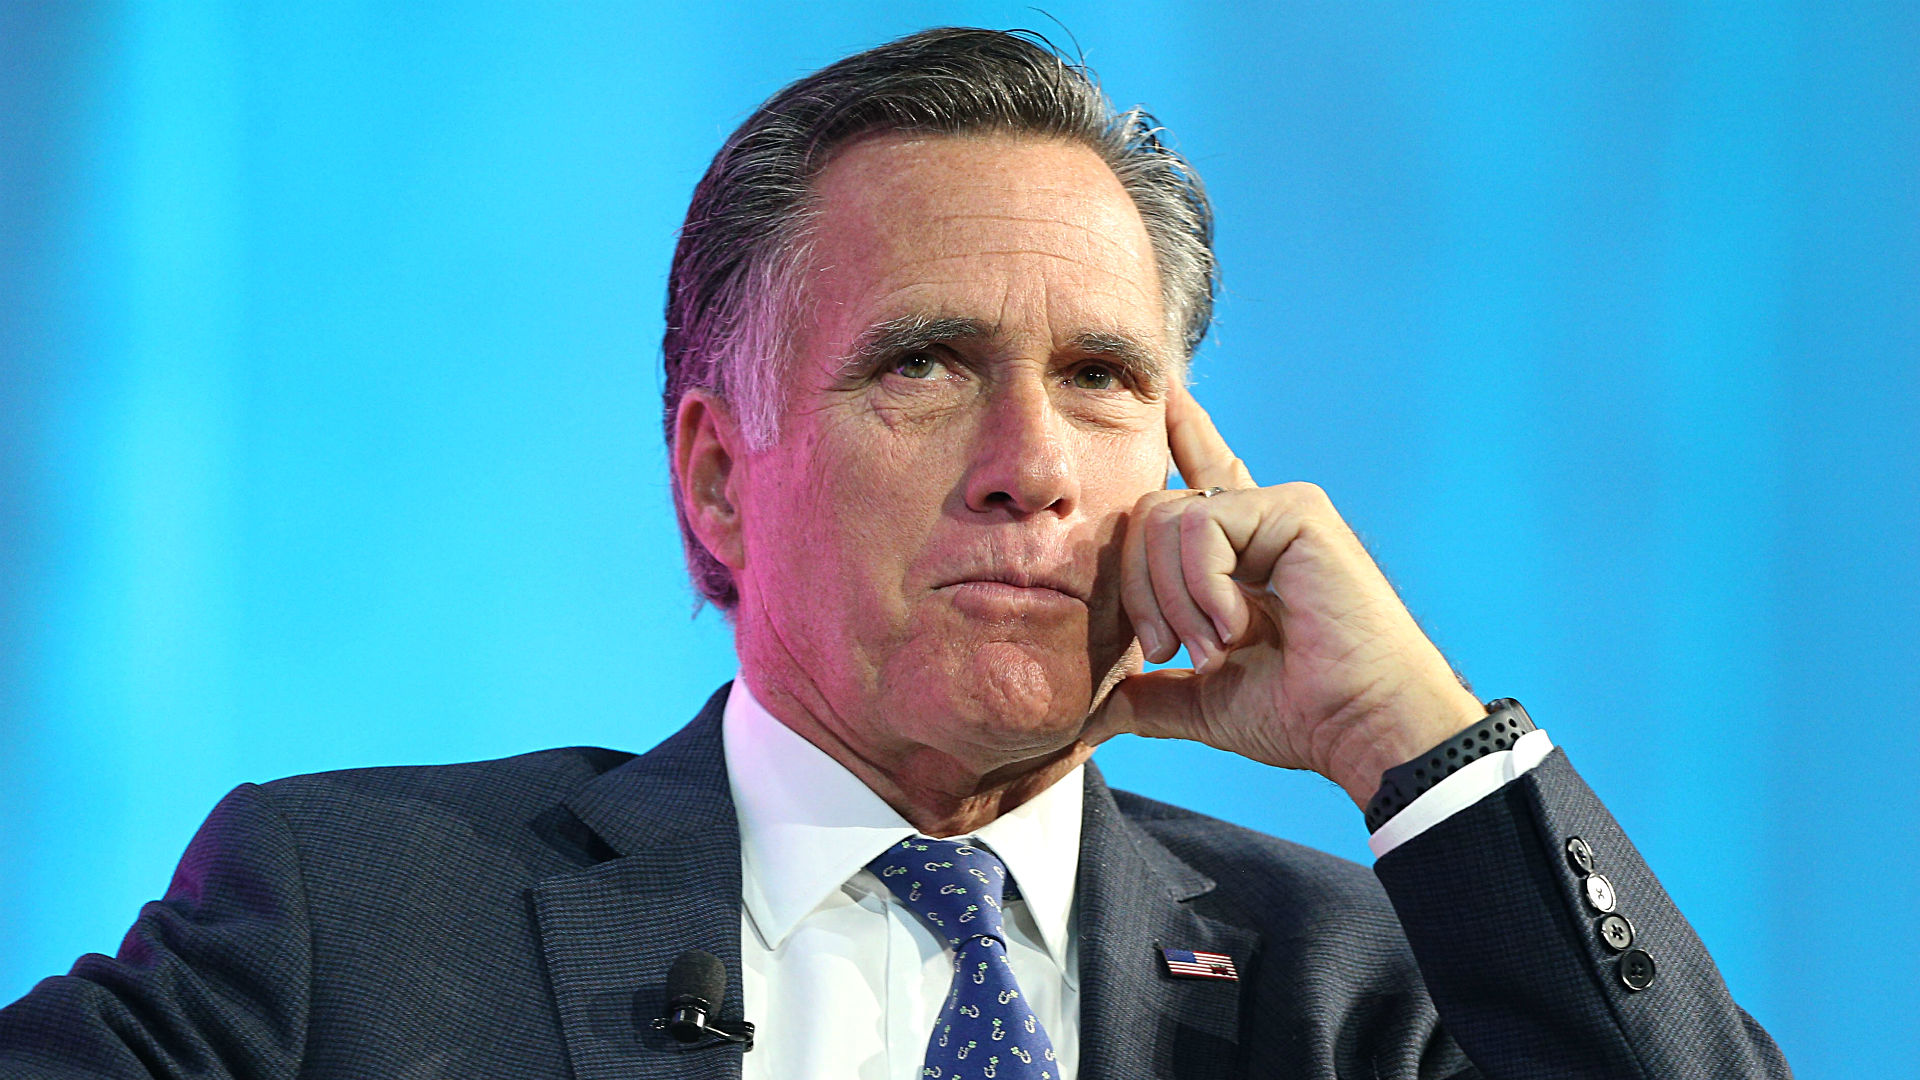 Sen. Mitt Romney warns NCAA about compensating athletes: 'We're coming for you'